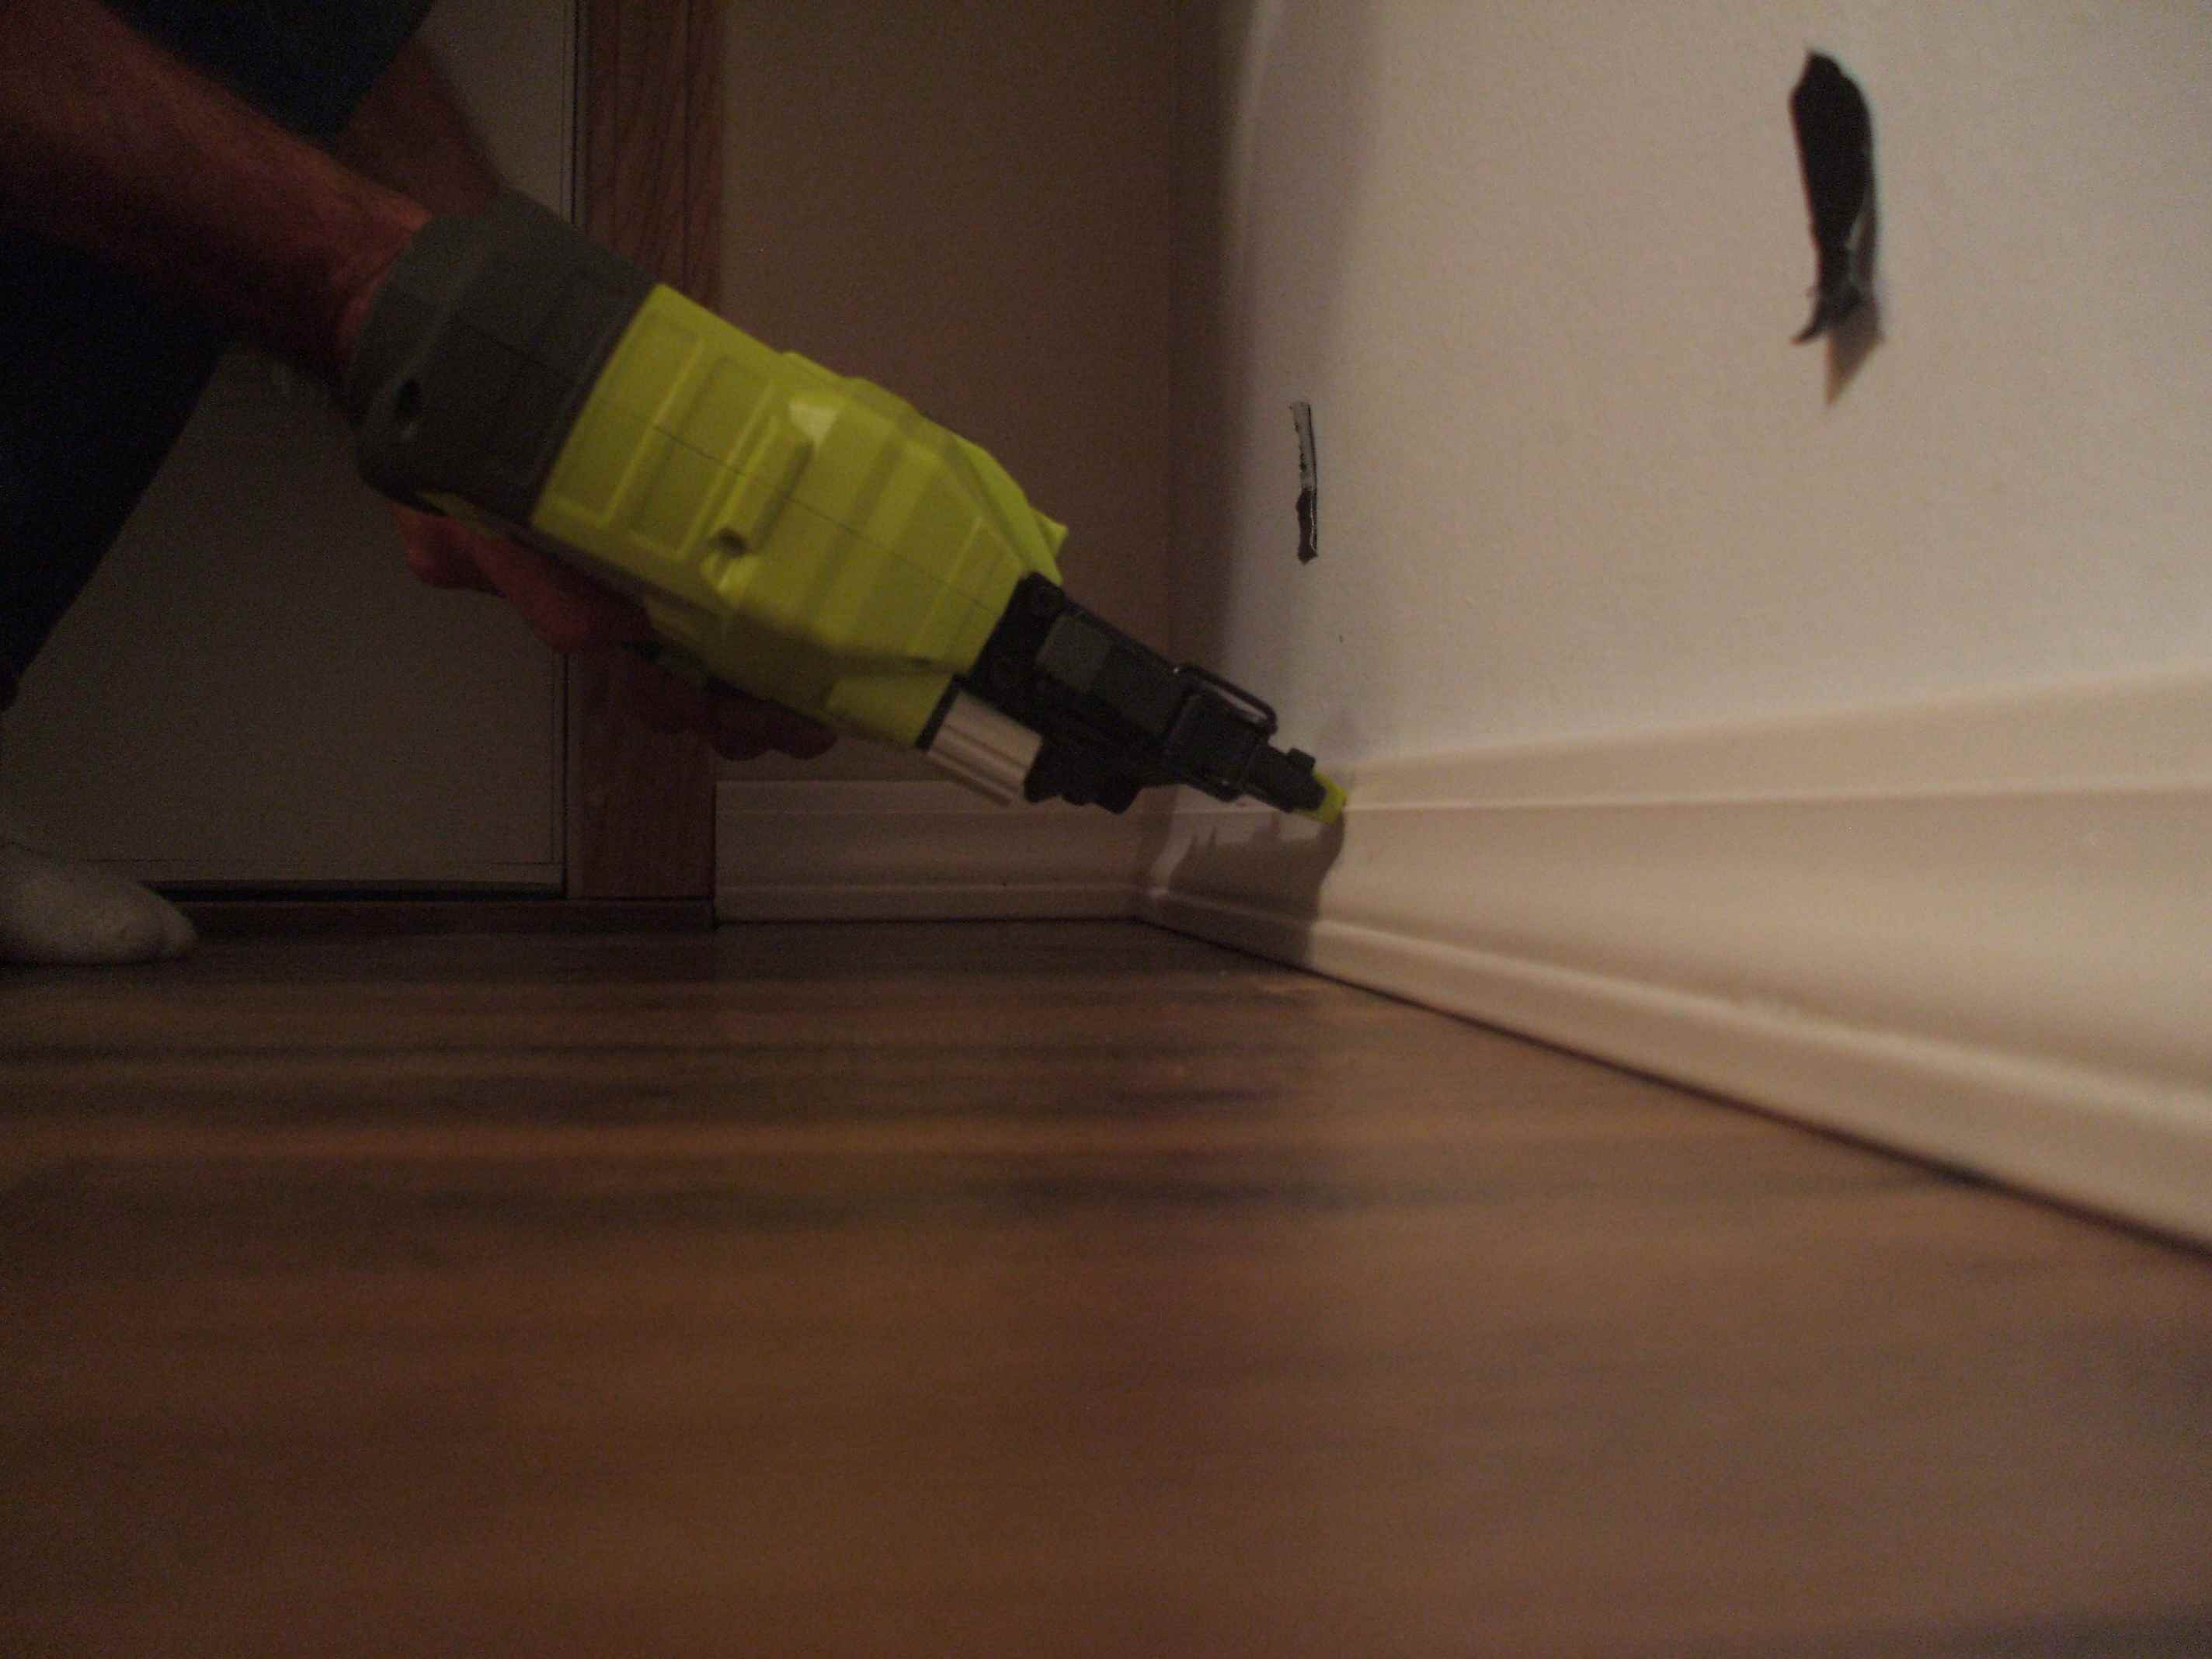 Nail Baseboards in Place